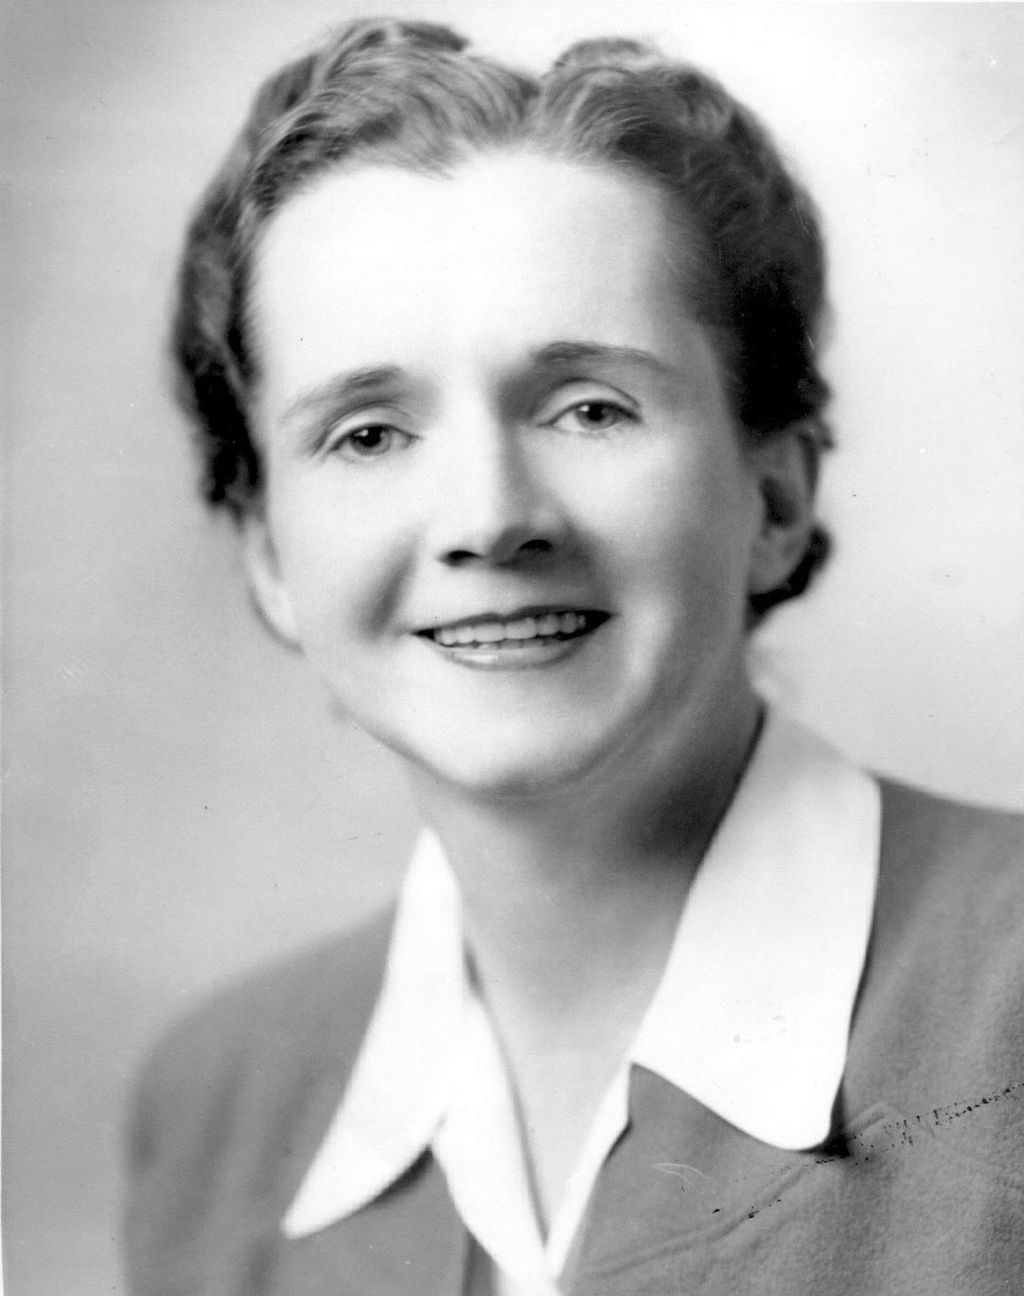 A picture of Rachel Carson taken from herWikipedia page